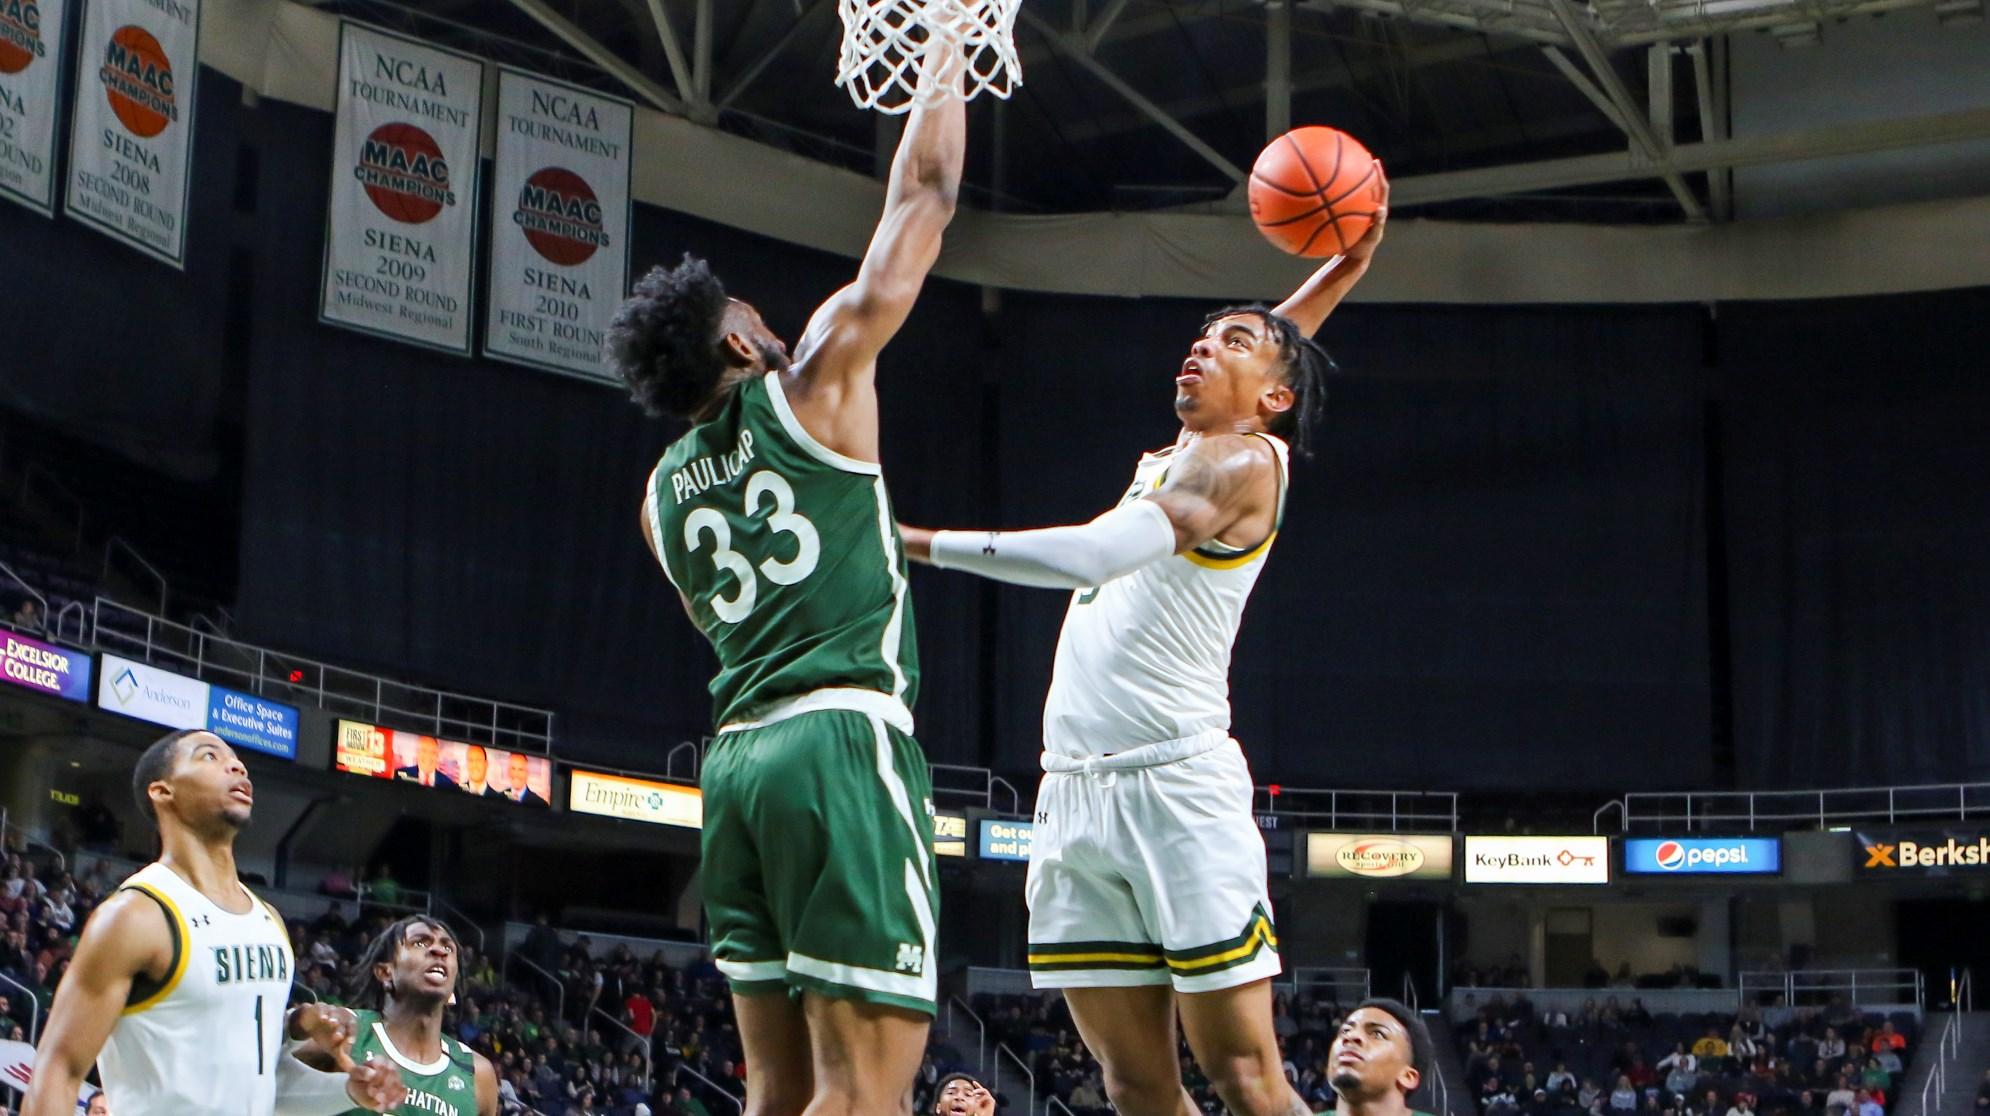 Siena Saints swingman Manny Camper attempting a dunk against the Manhattan Jaspers